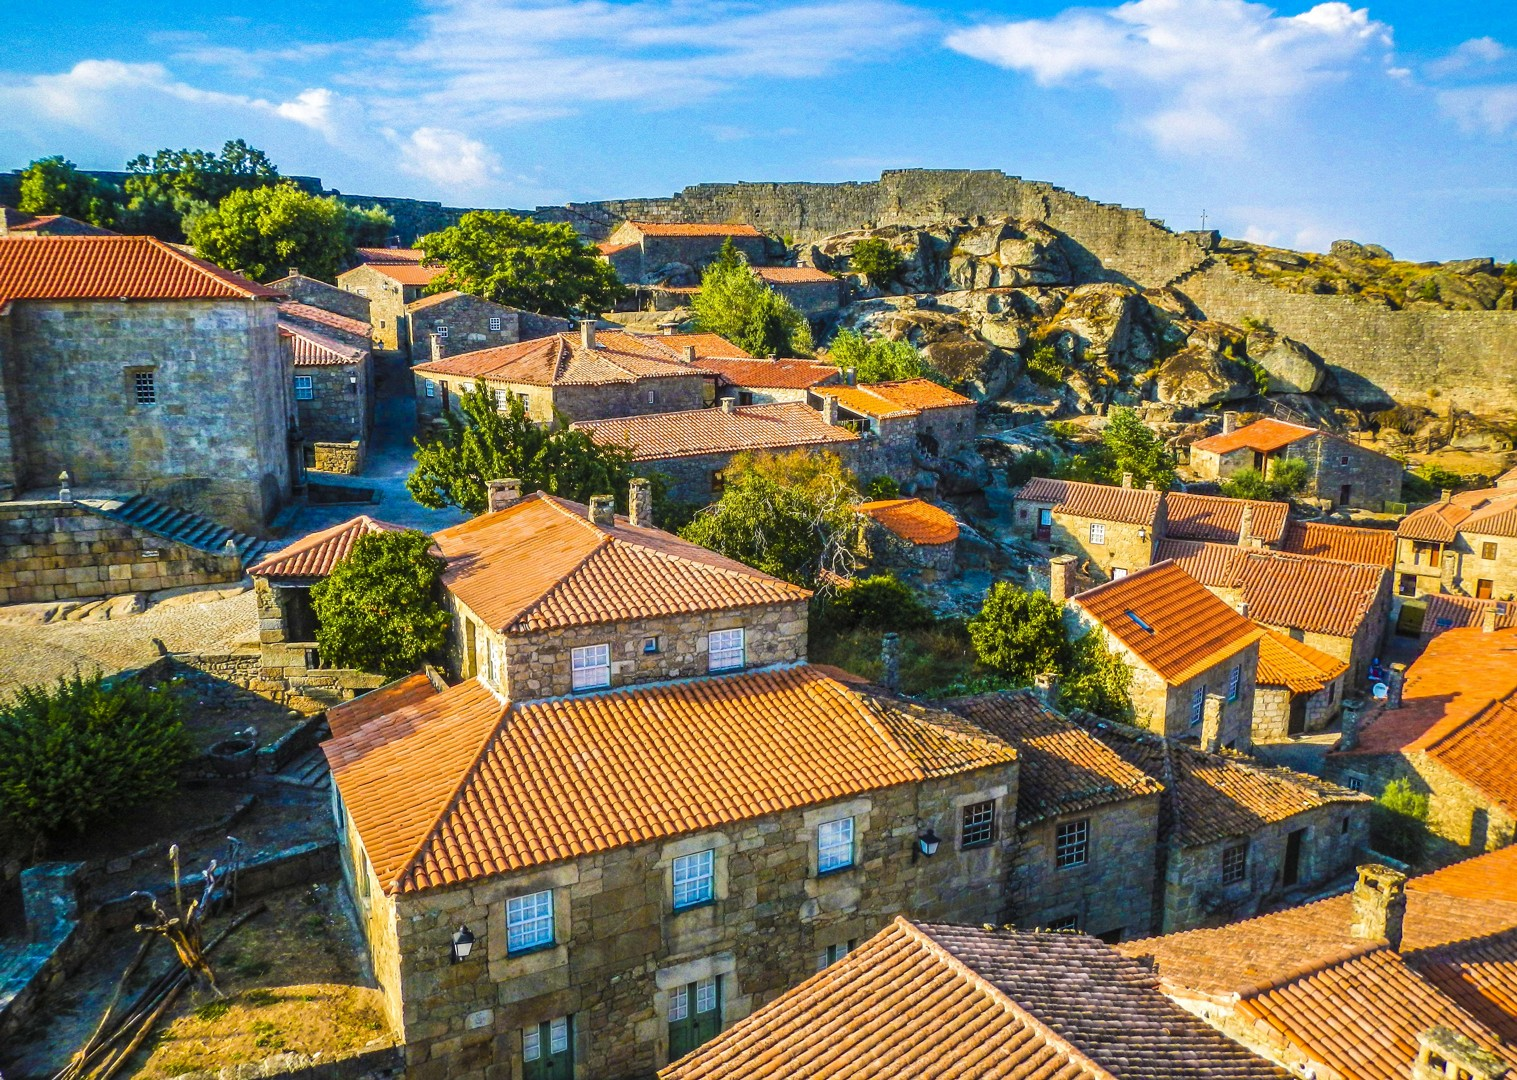 egitania-olive-press-cultural-adventure-portugal-historic-villages-cycling.jpg - Portugal - Historic Villages - Self-Guided Leisure Cycling Holiday - Leisure Cycling